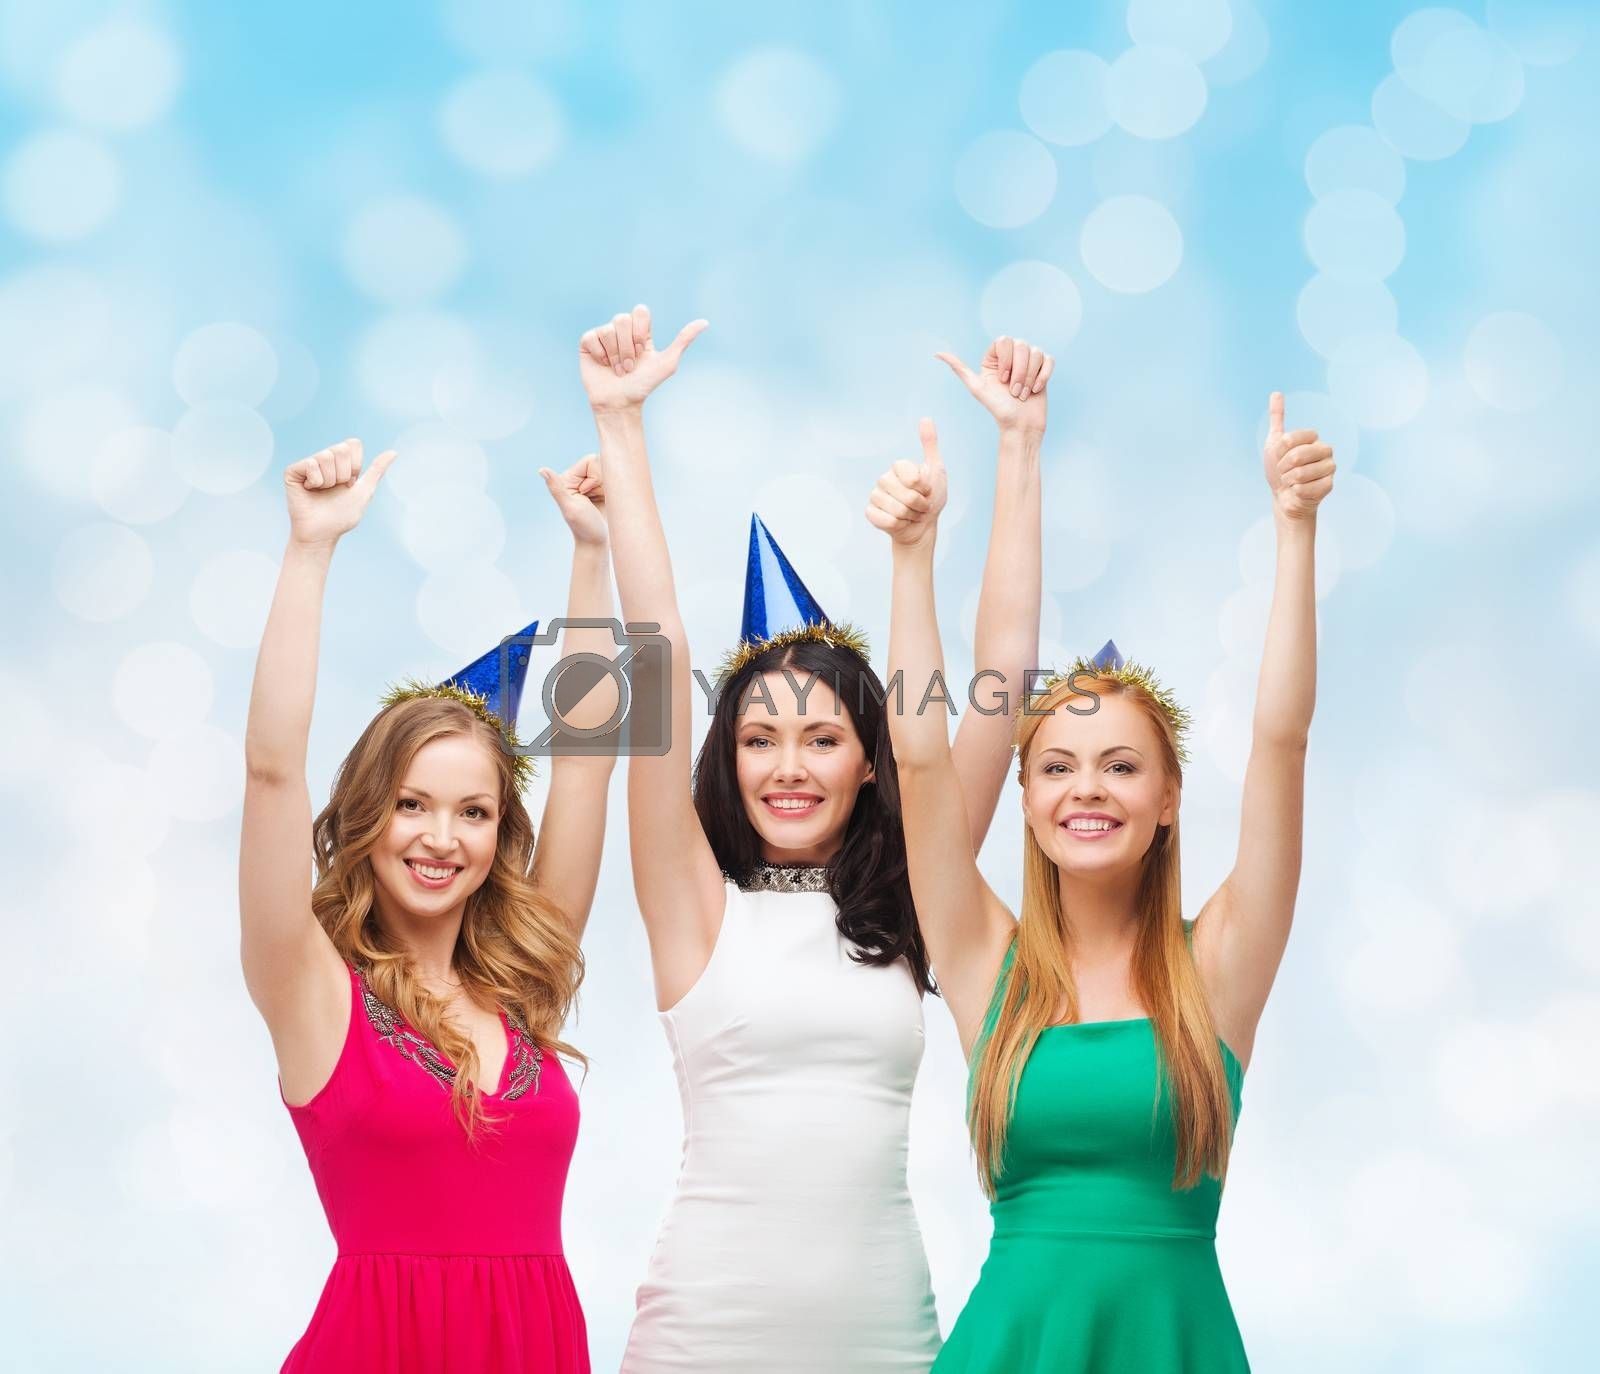 holidays, people, gesture and celebration concept - smiling women in party caps showing thumbs up over blue lights background